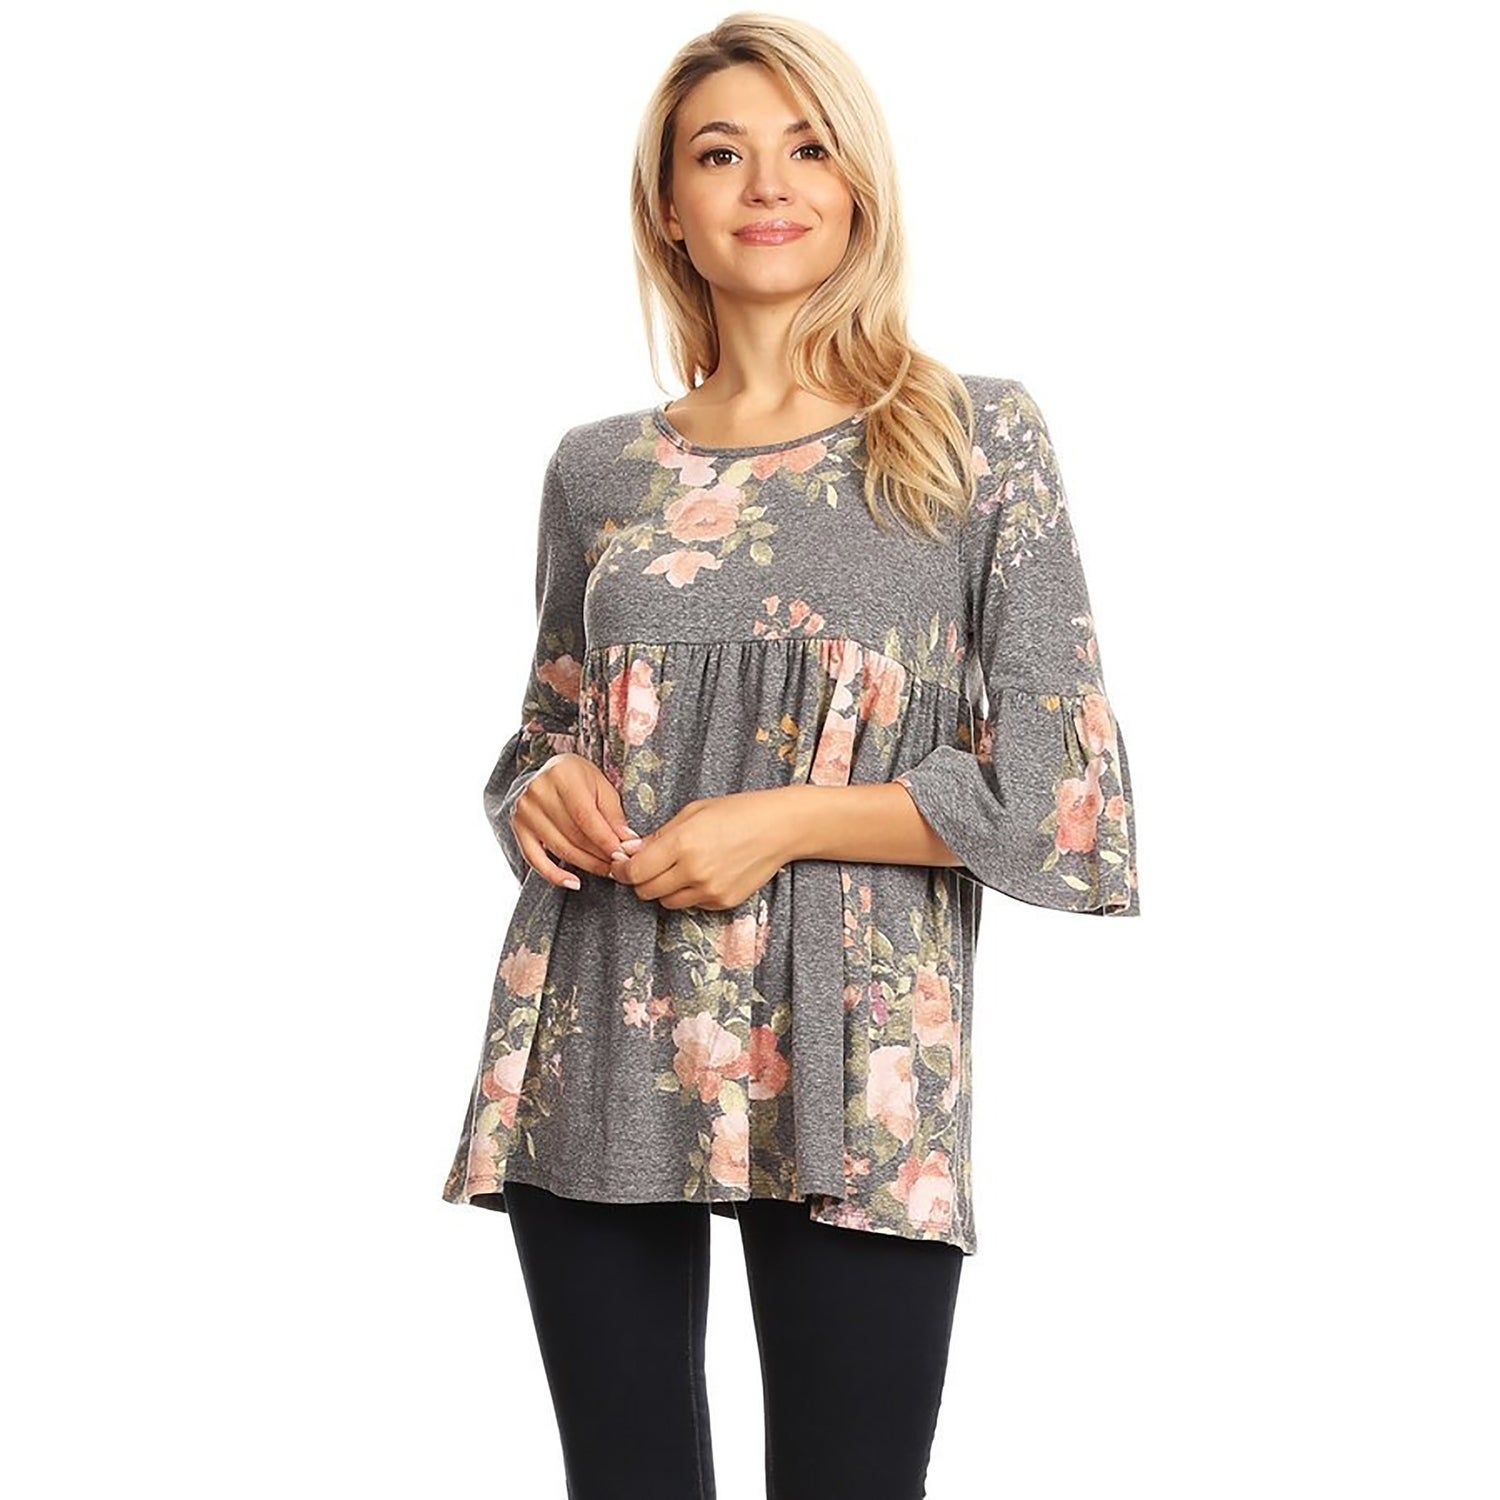 0a81f139fde Shop Women's Print Baby Doll Style Pleated Tunic Top - On Sale - Free  Shipping On Orders Over $45 - Overstock - 22538283